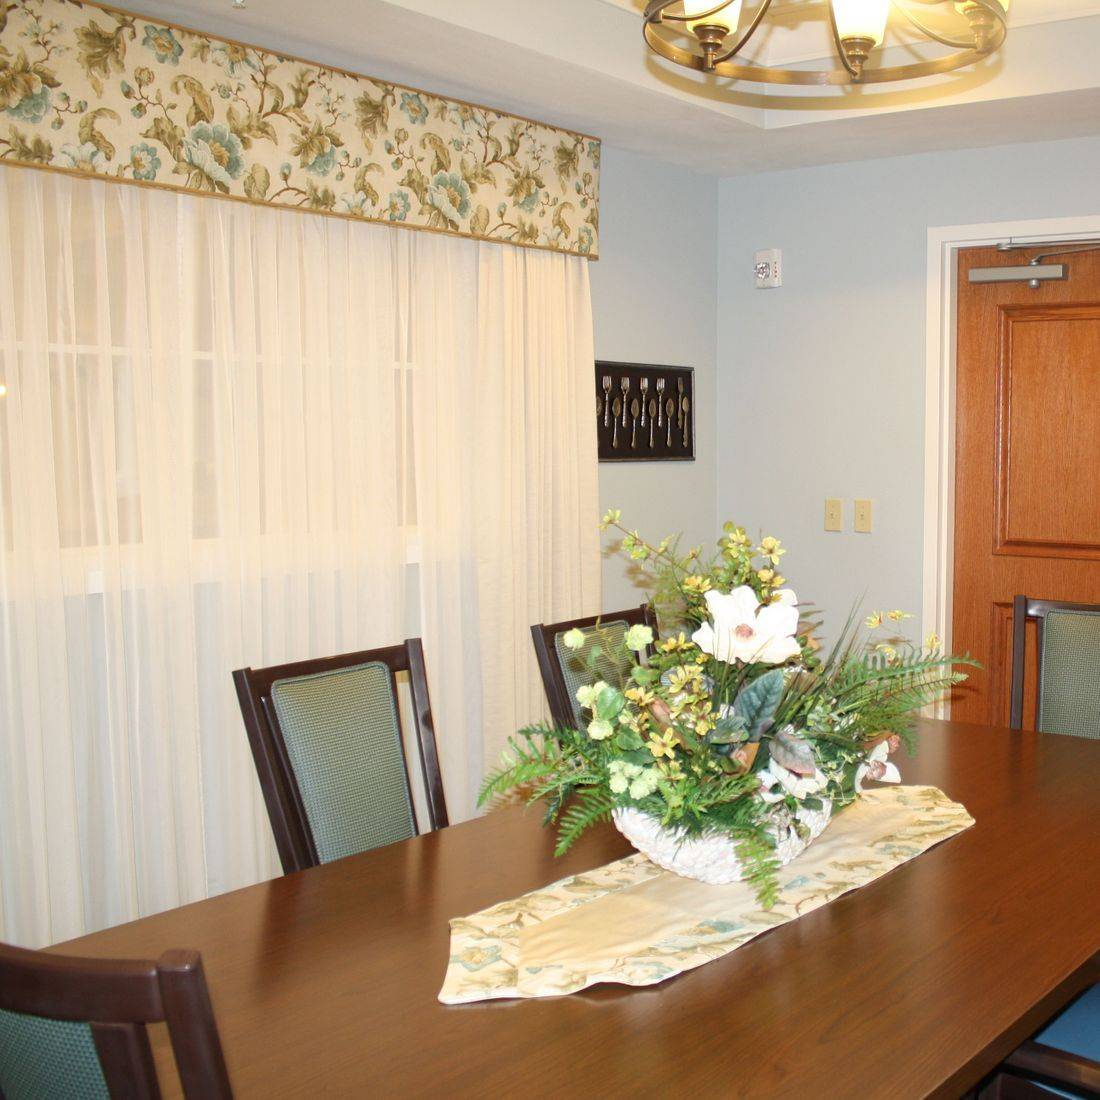 Magnolia Dining Room at Sumter Place by the Creative Design Team